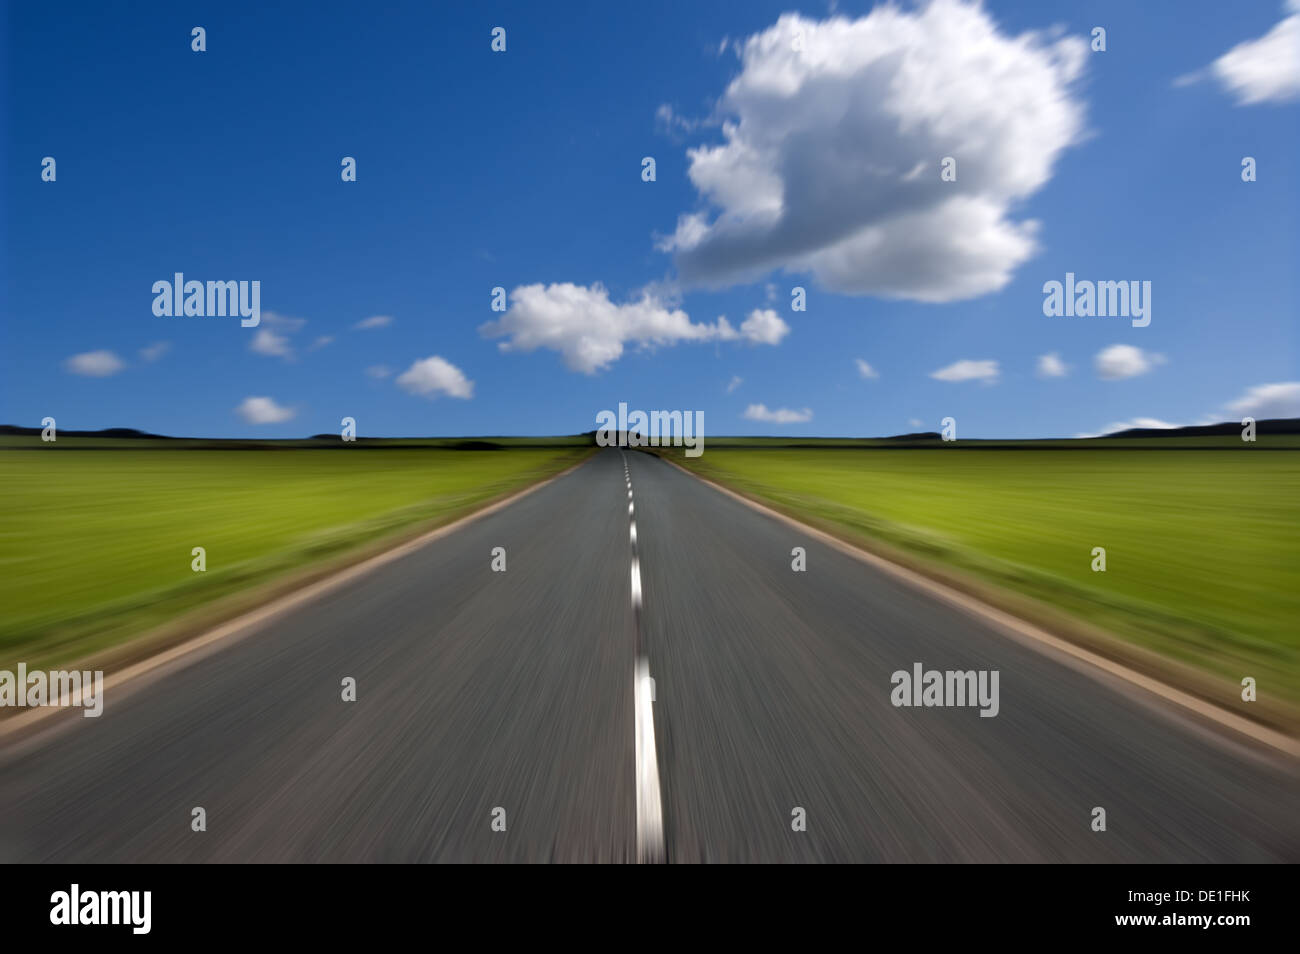 Rural road stretching out into the distance with motion blur under a big expanse of blue sky. Stock Photo